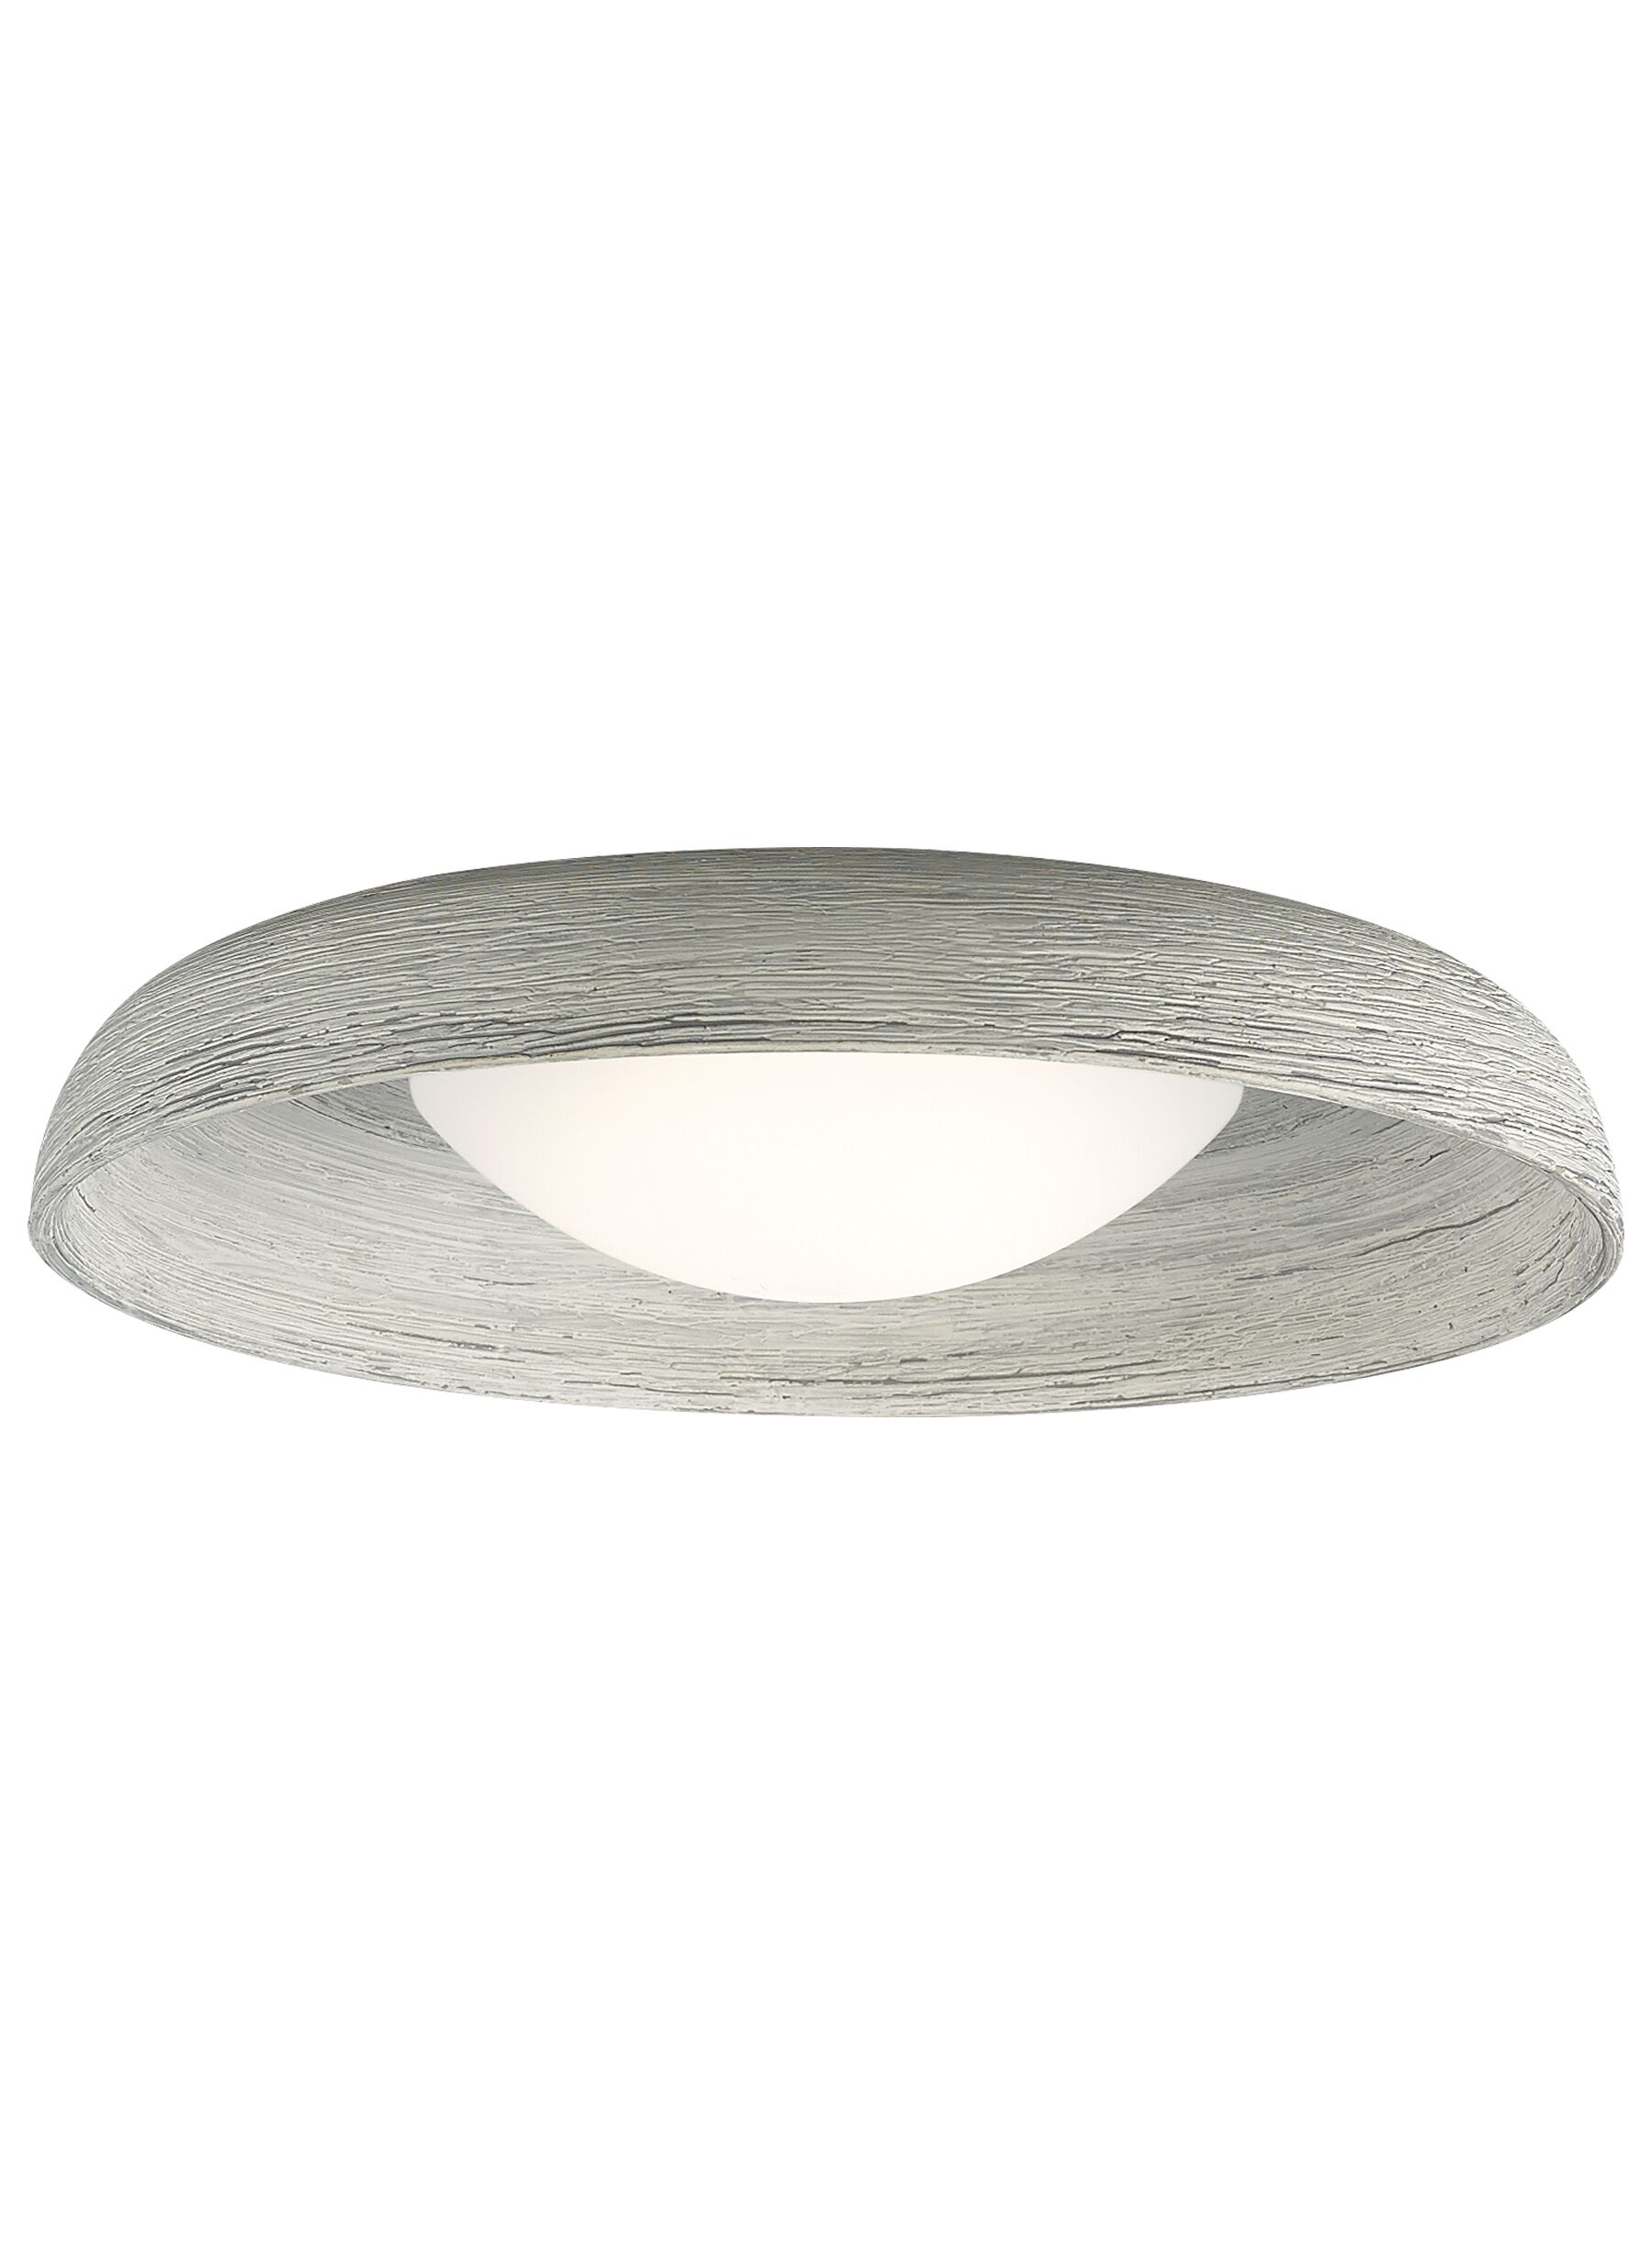 Karam 1-Light Flush Mount Finish: Concrete, Bulb Type: 120V Warm Color Dimming 3000K - 2200K LED